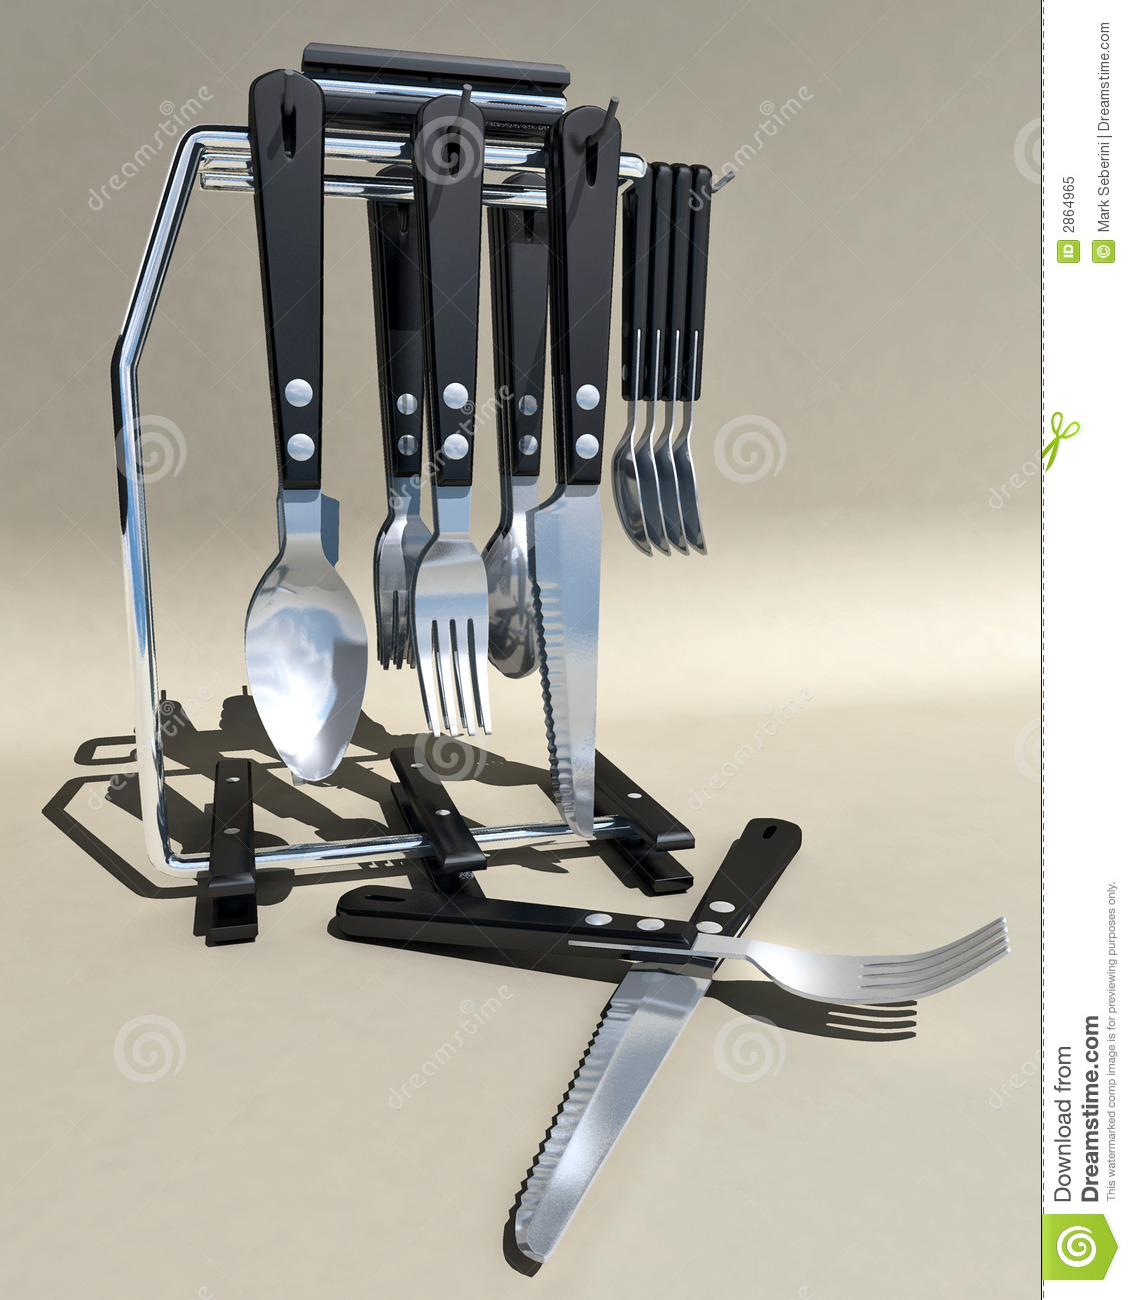 Standing Knife Flatware Silverware Stand Stock Image Image Of Knives Metal